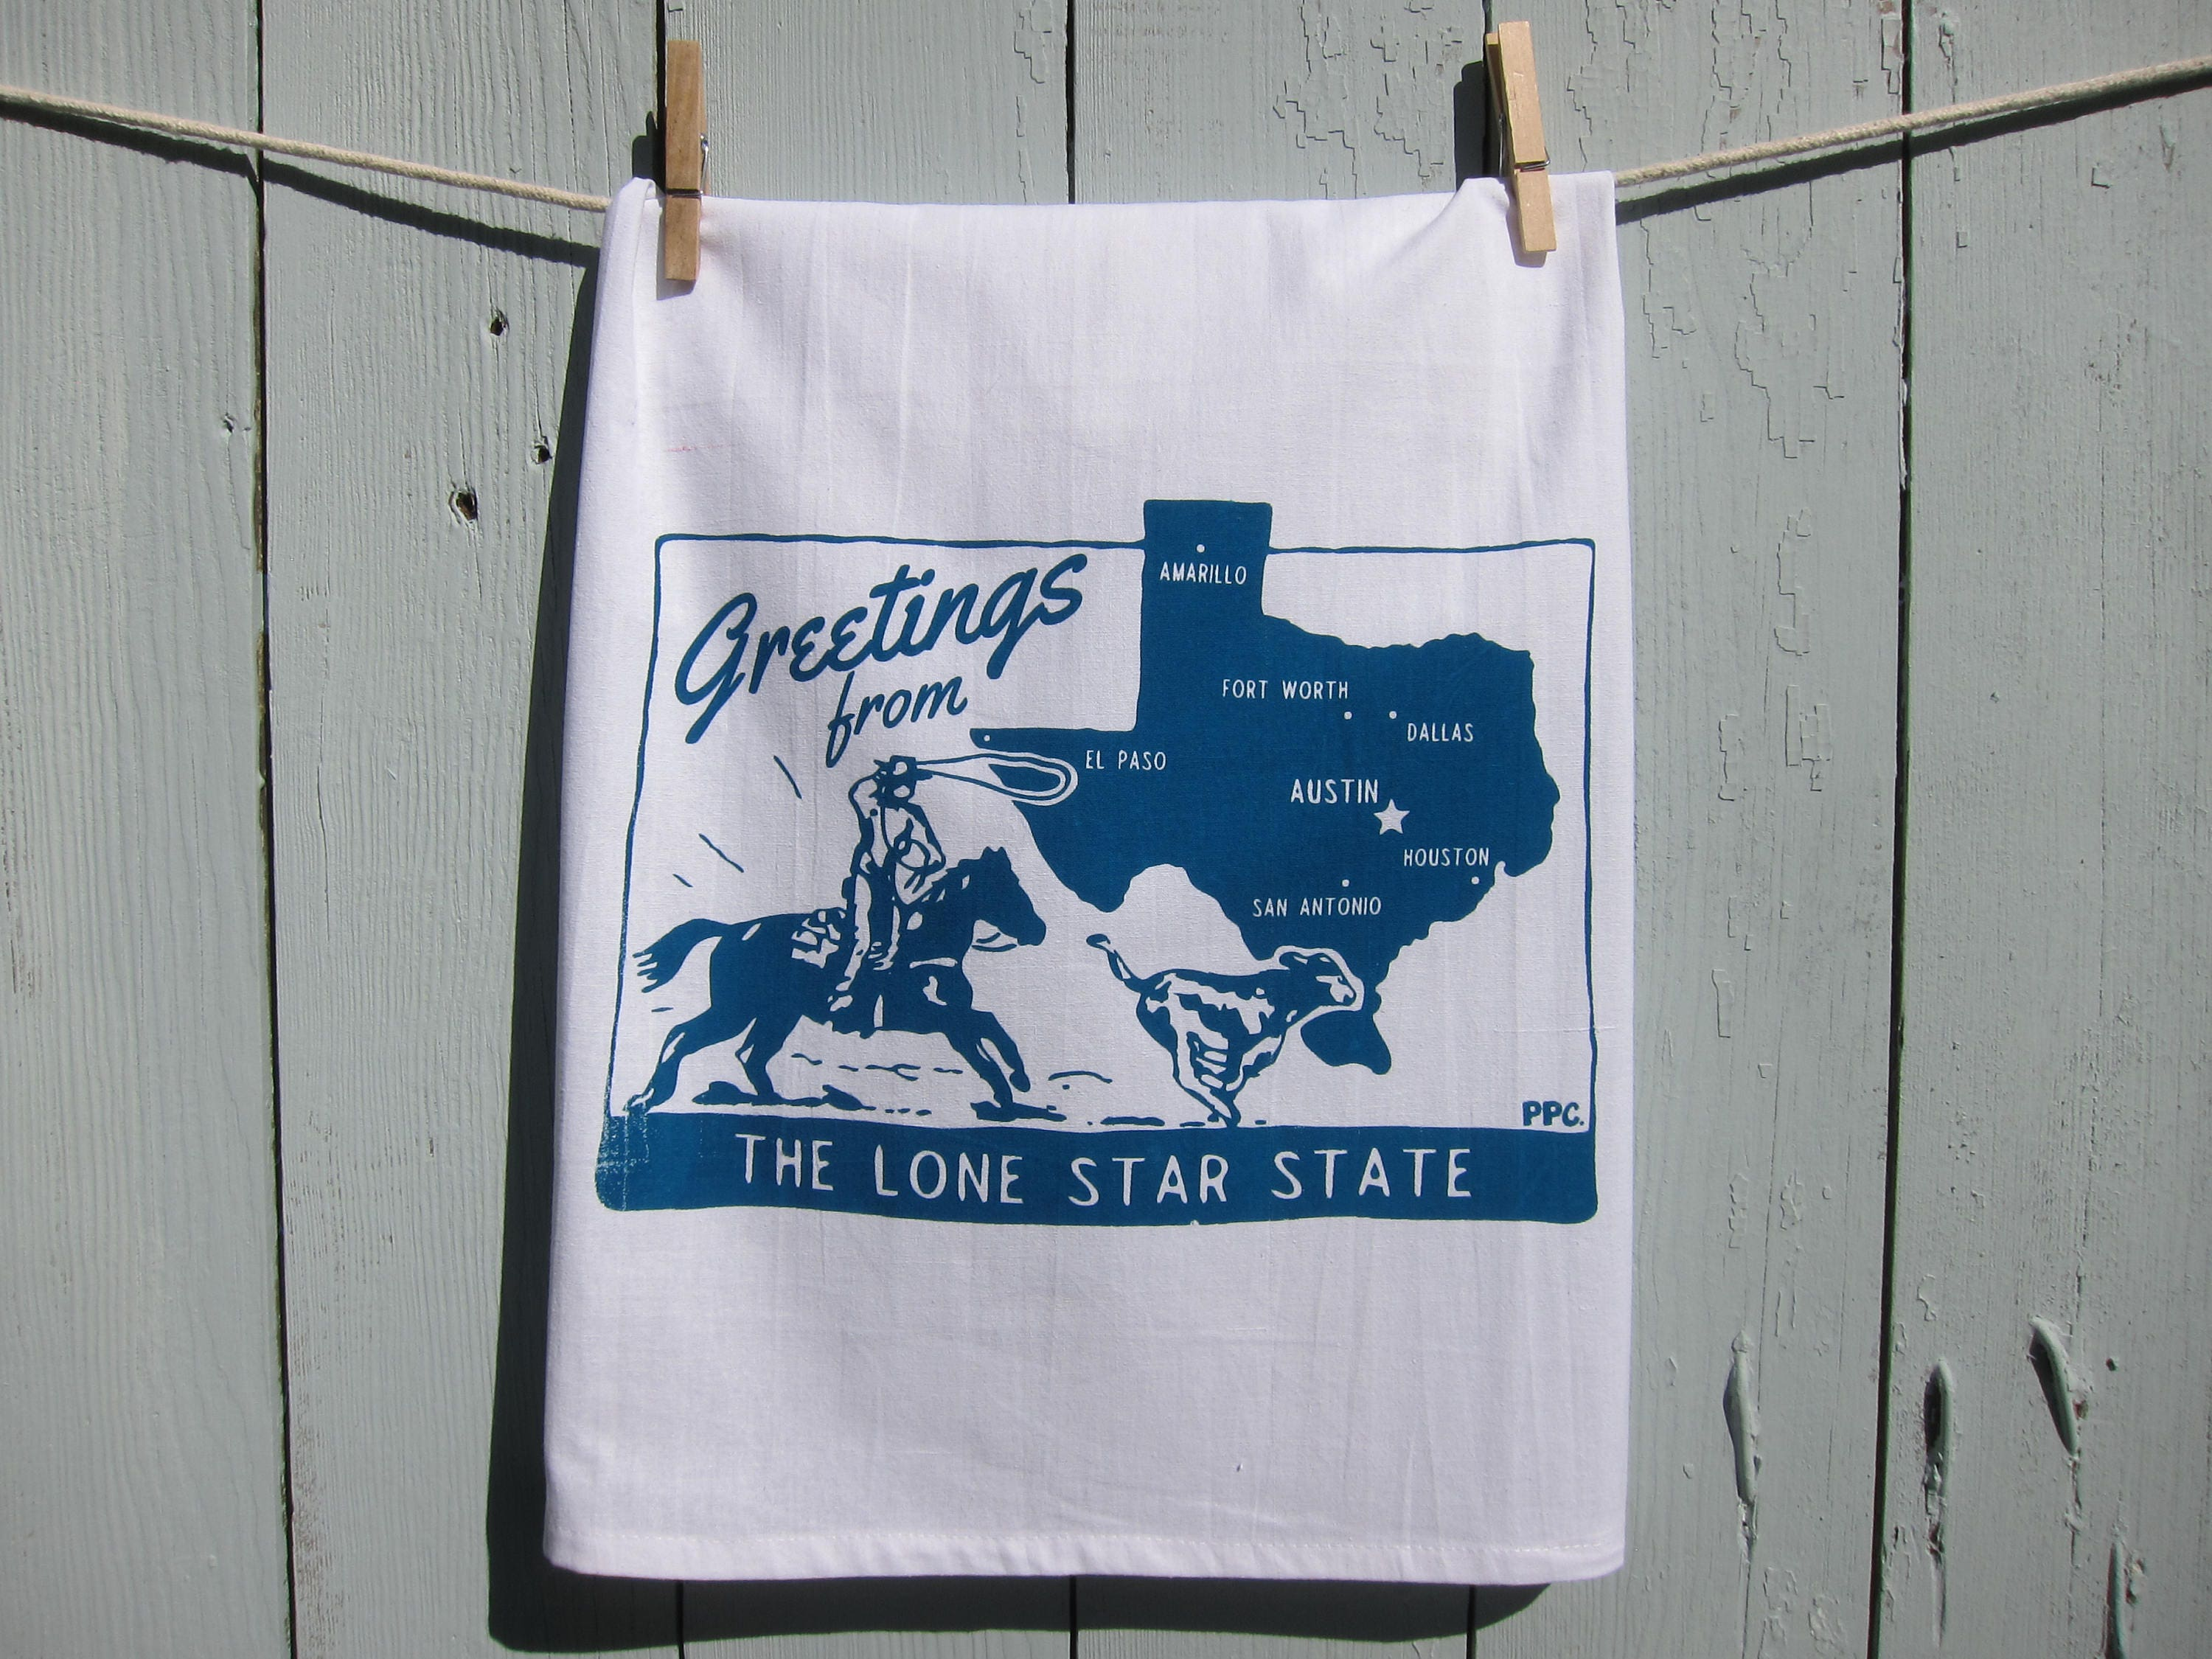 Greetings from the lone star state texas tea towel kristyandbryce Gallery